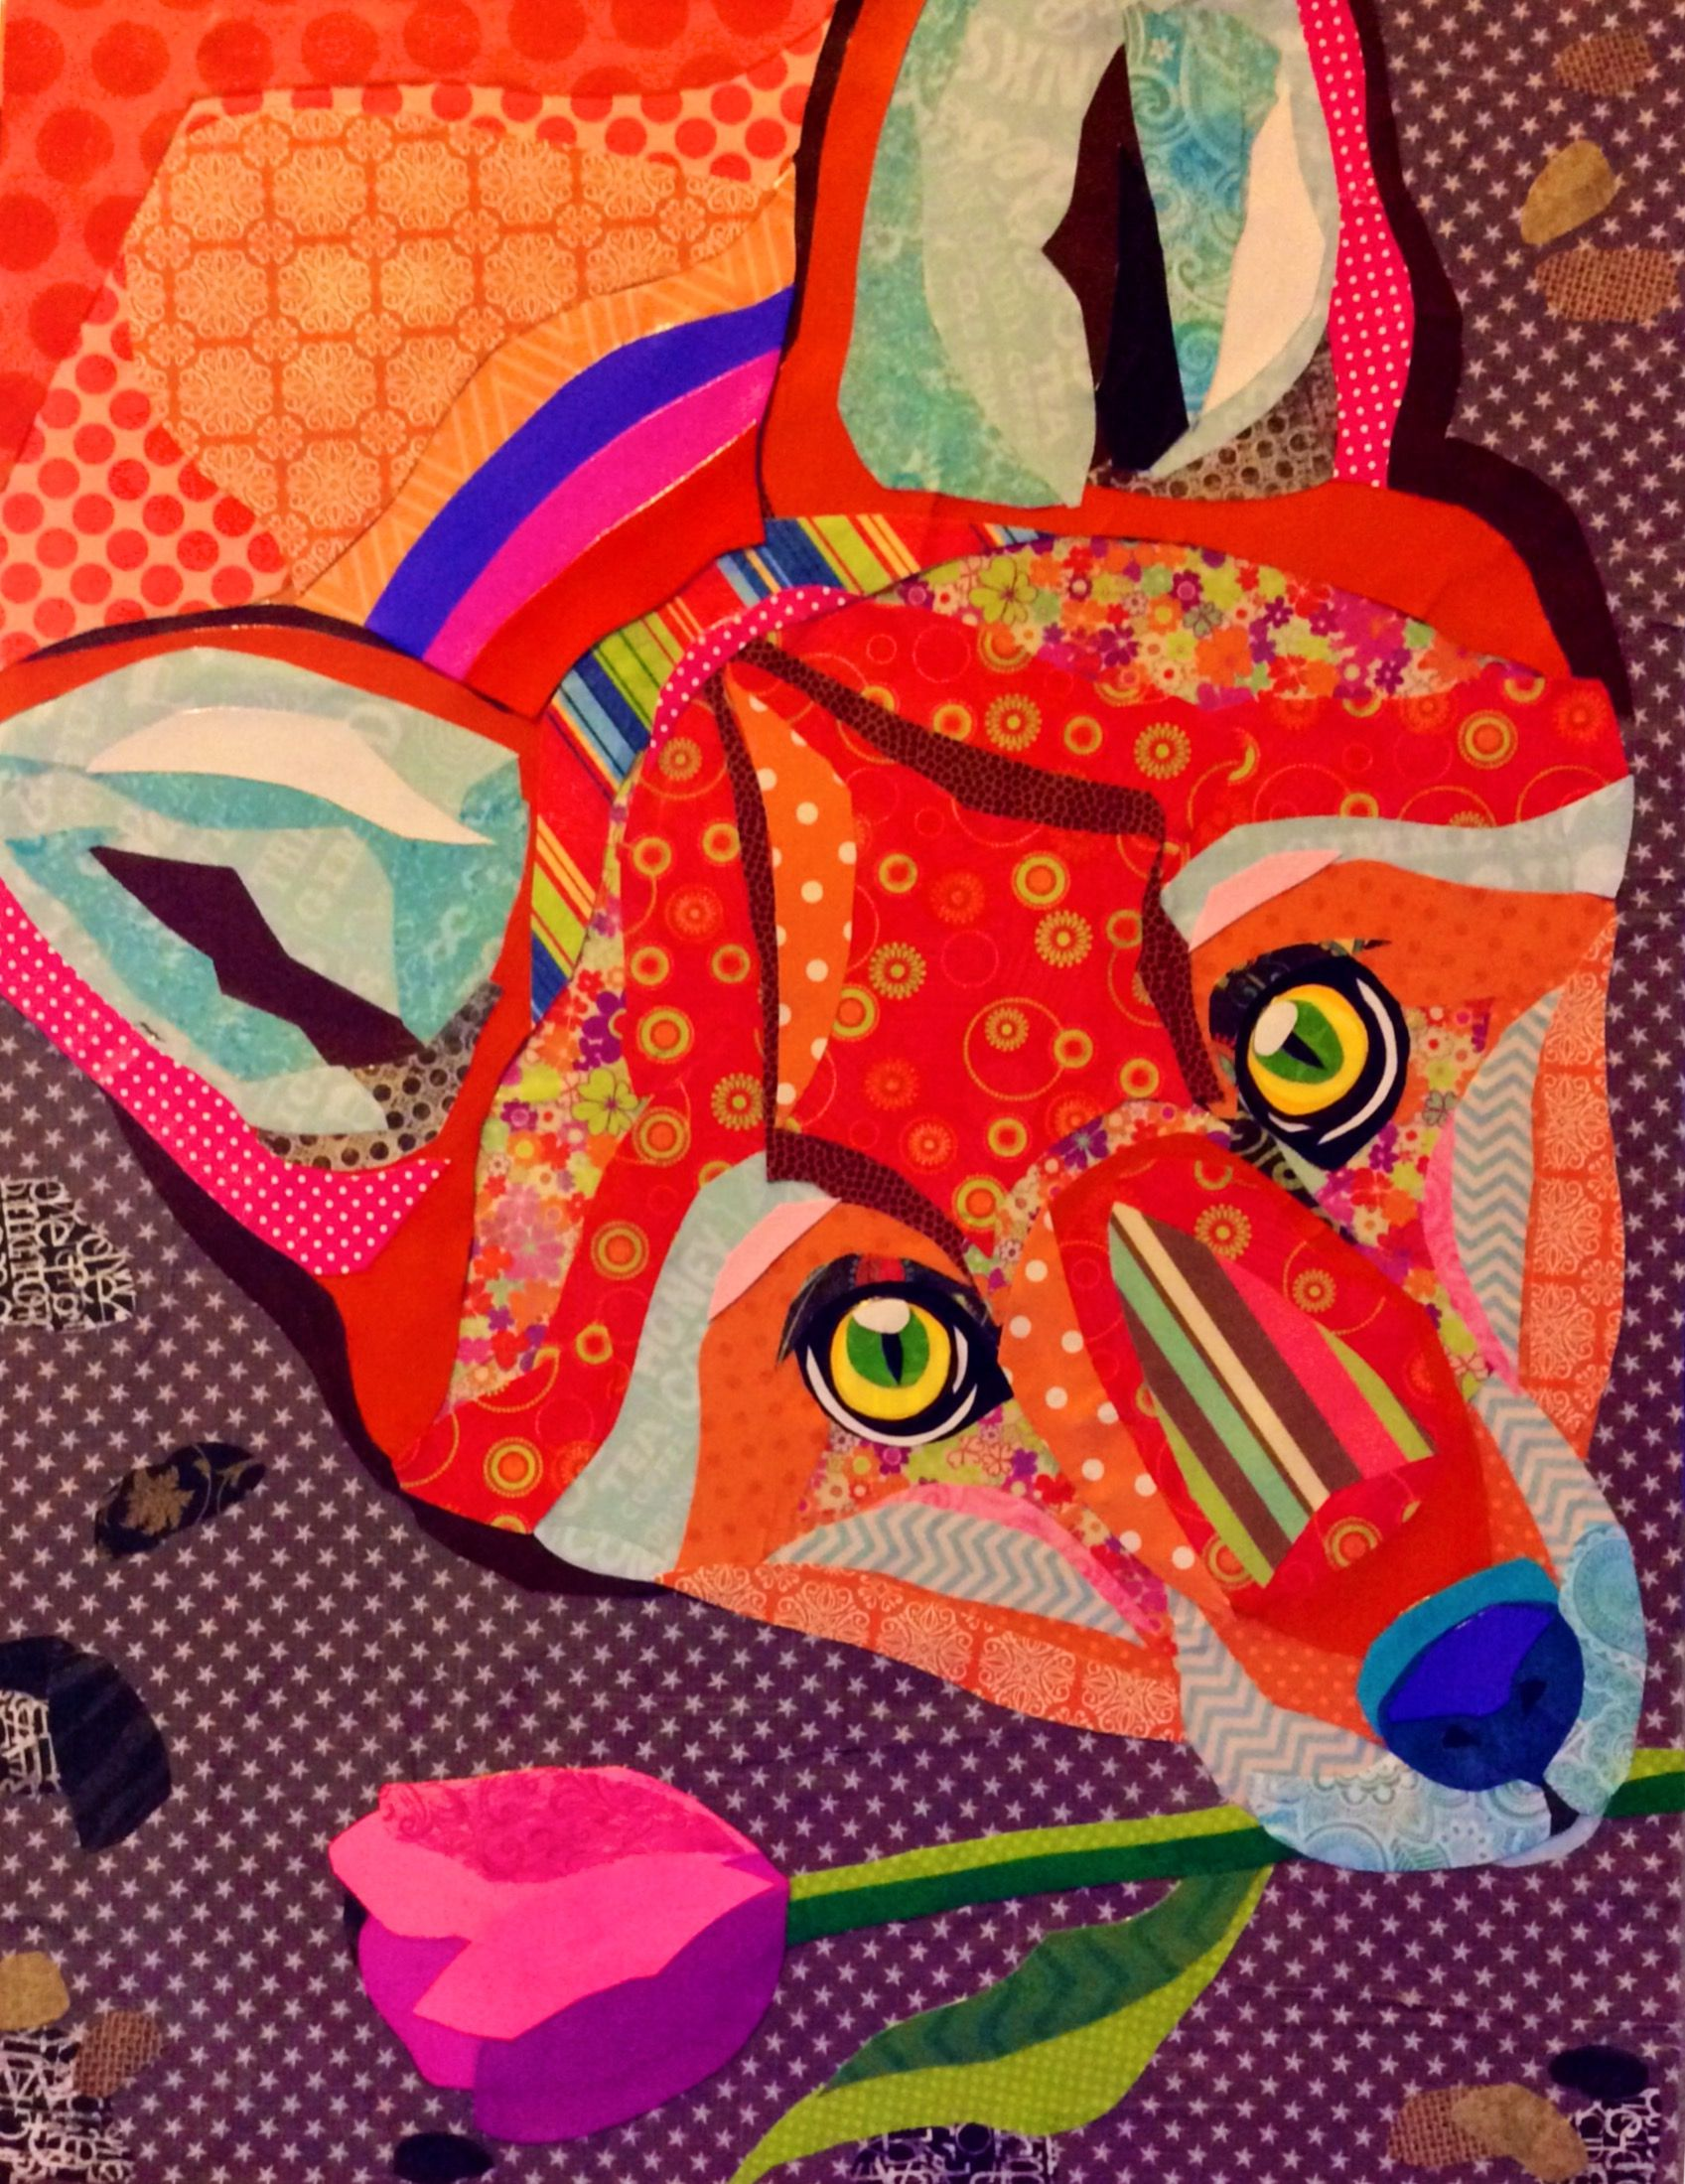 Scrapbook paper collage - Scrapbook Paper Collage Art Friendly Fox By Laura Yager Foxes In Artwork Abstract Animal Artwork Fox Art